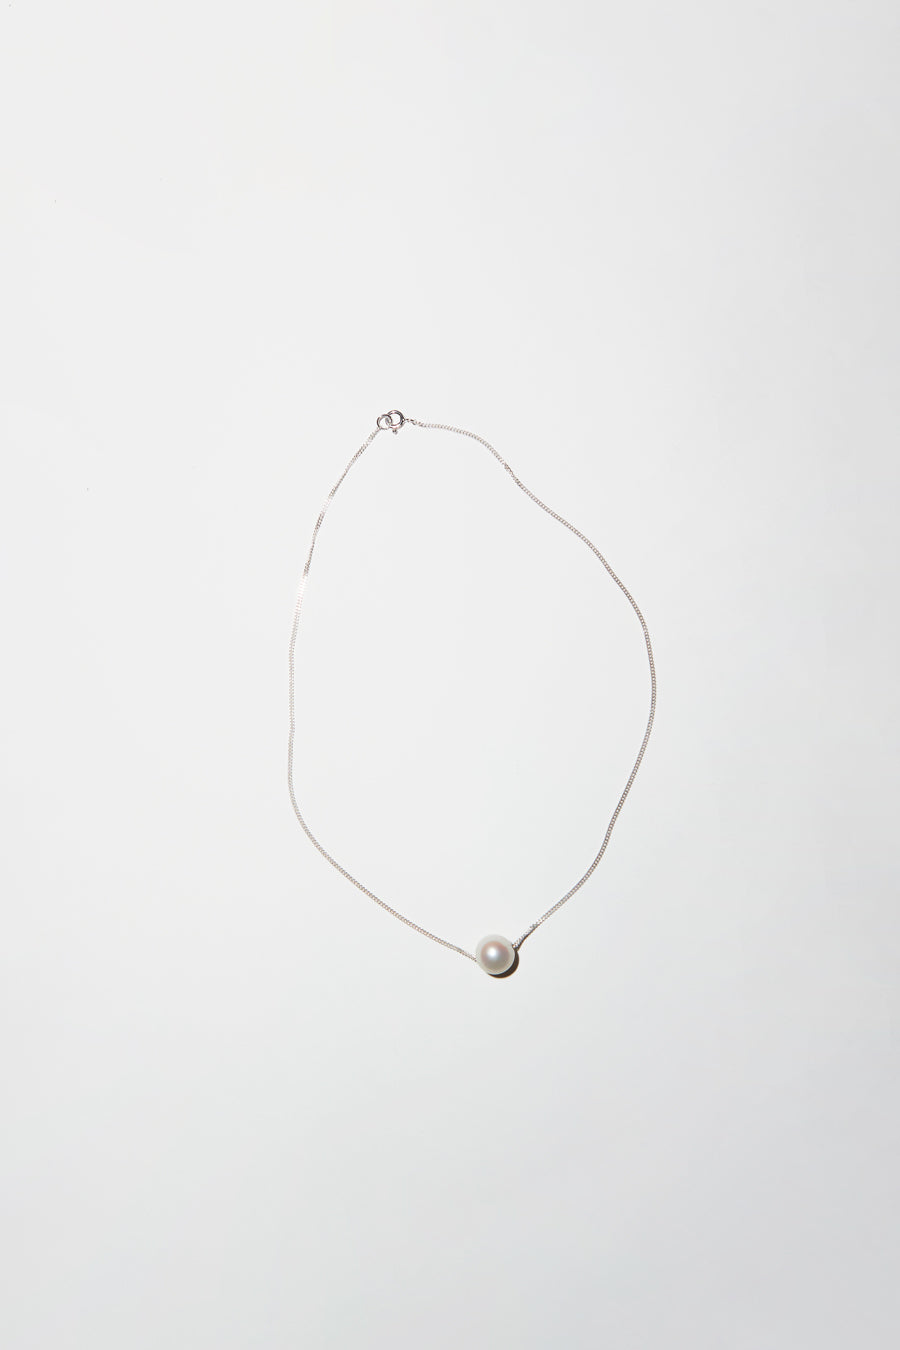 Vibe Harslof Iris Pearl Necklace in Silver